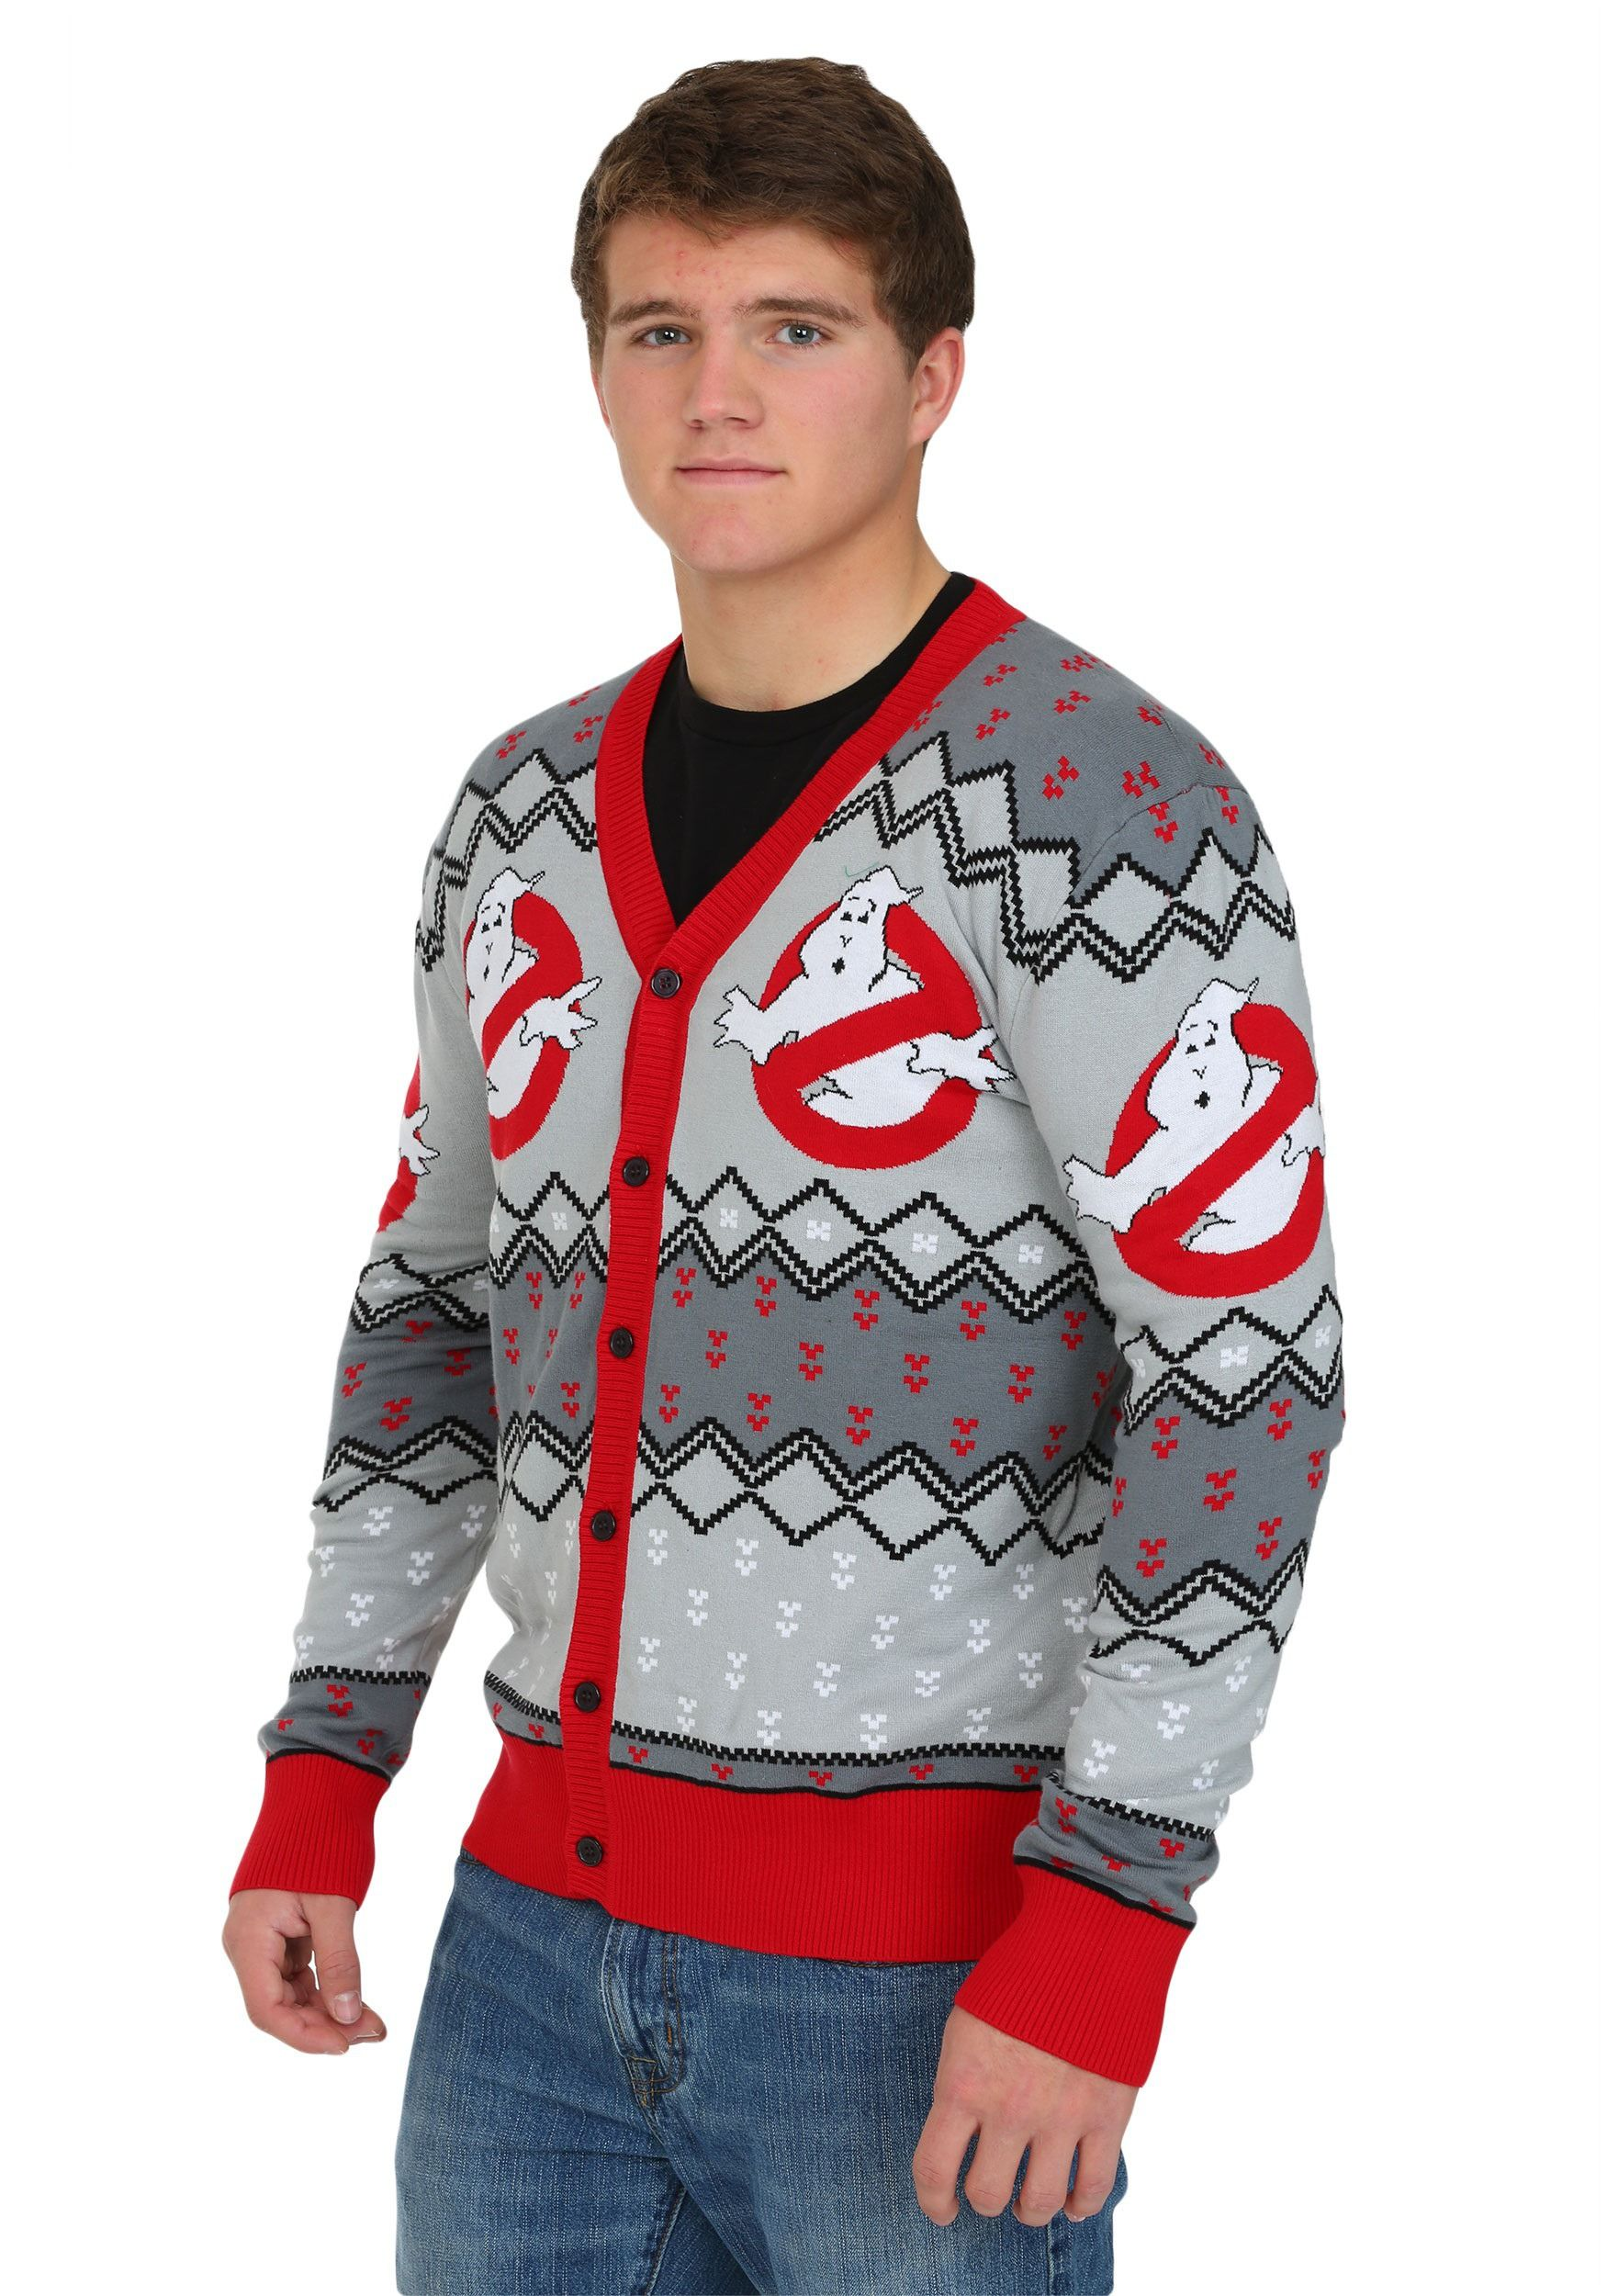 The perfect cardigan for your office Christmas party or casual Fridays at Ghostbusters Headquarters. -